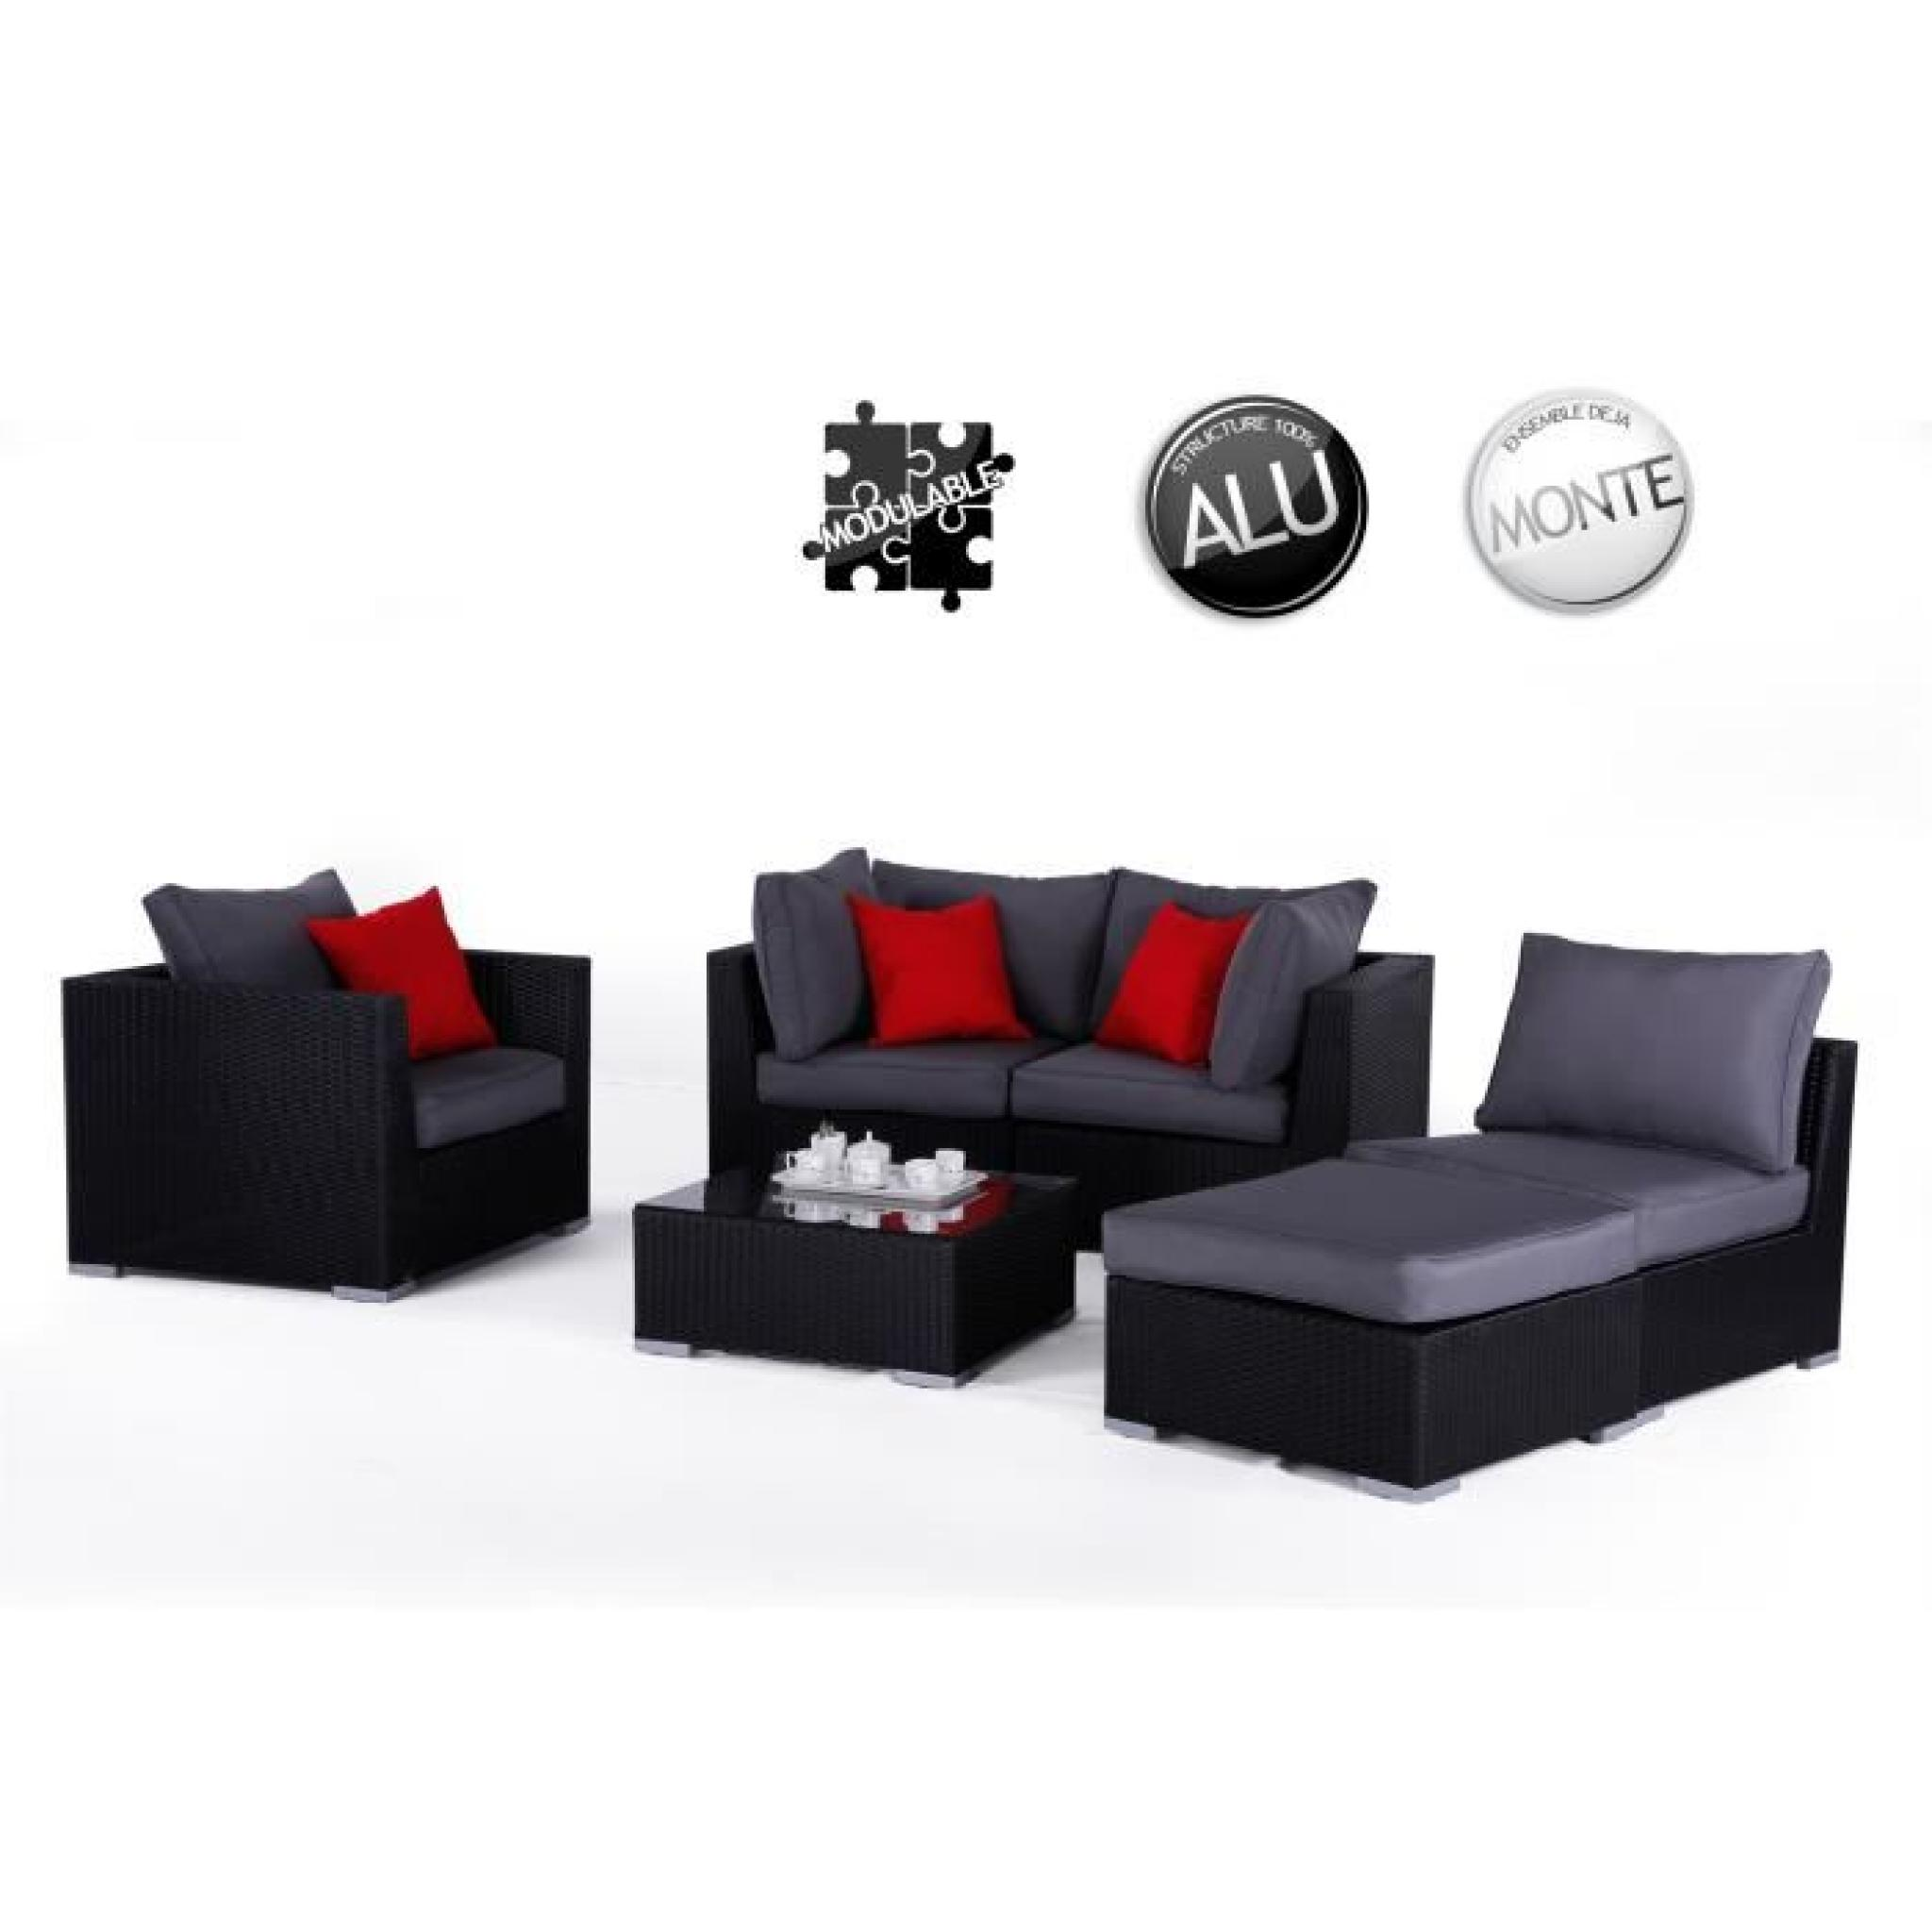 salon de jardin en r sine tress e venise noir achat vente salon de jardin en resine tressee. Black Bedroom Furniture Sets. Home Design Ideas